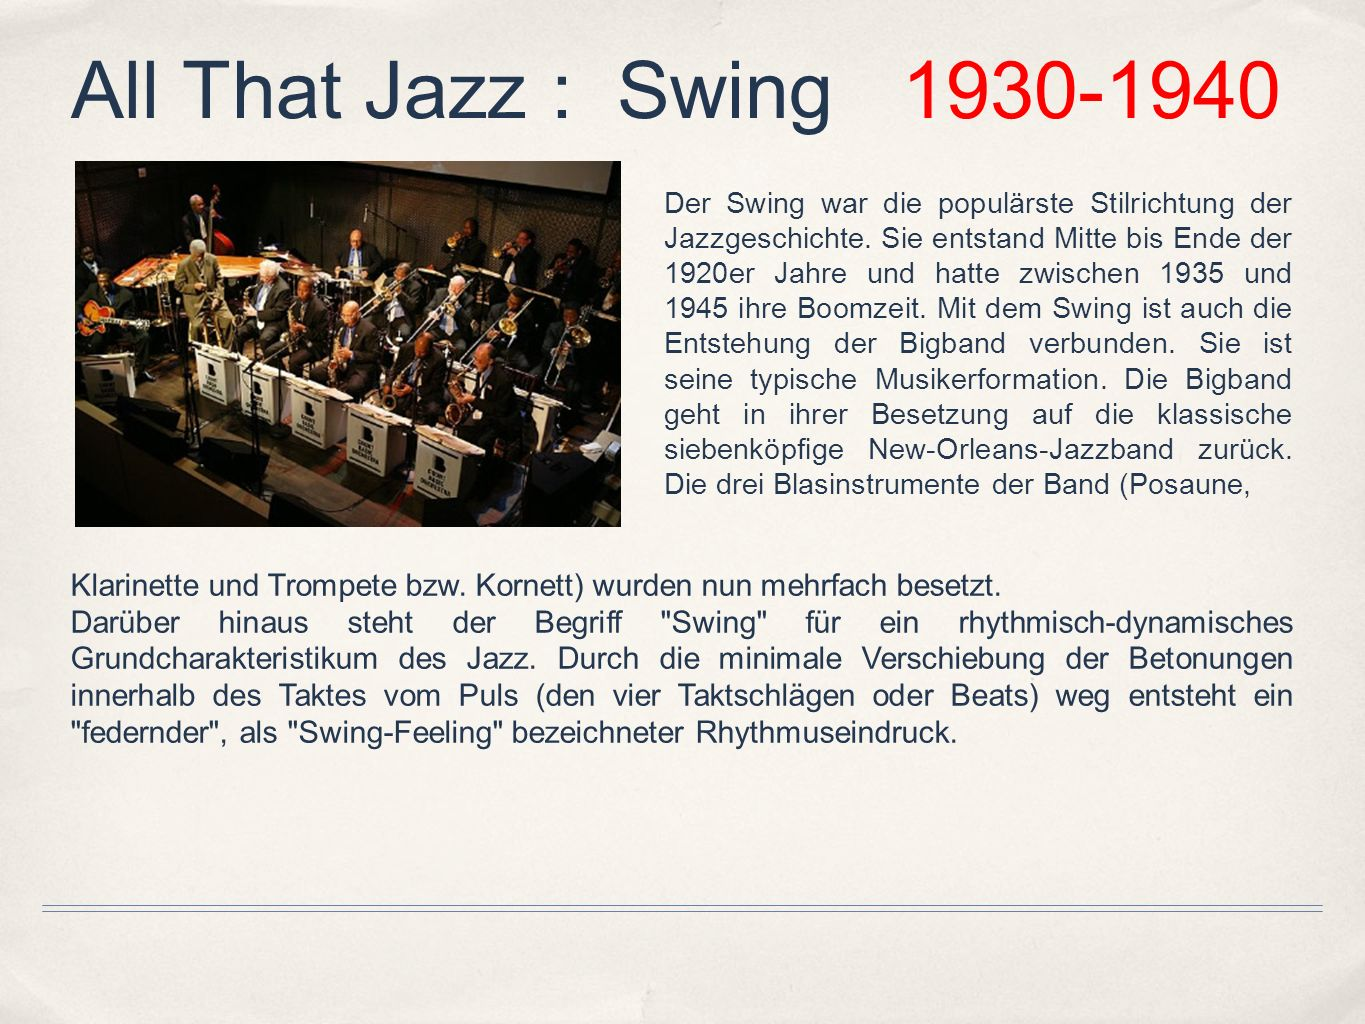 All That Jazz : Swing